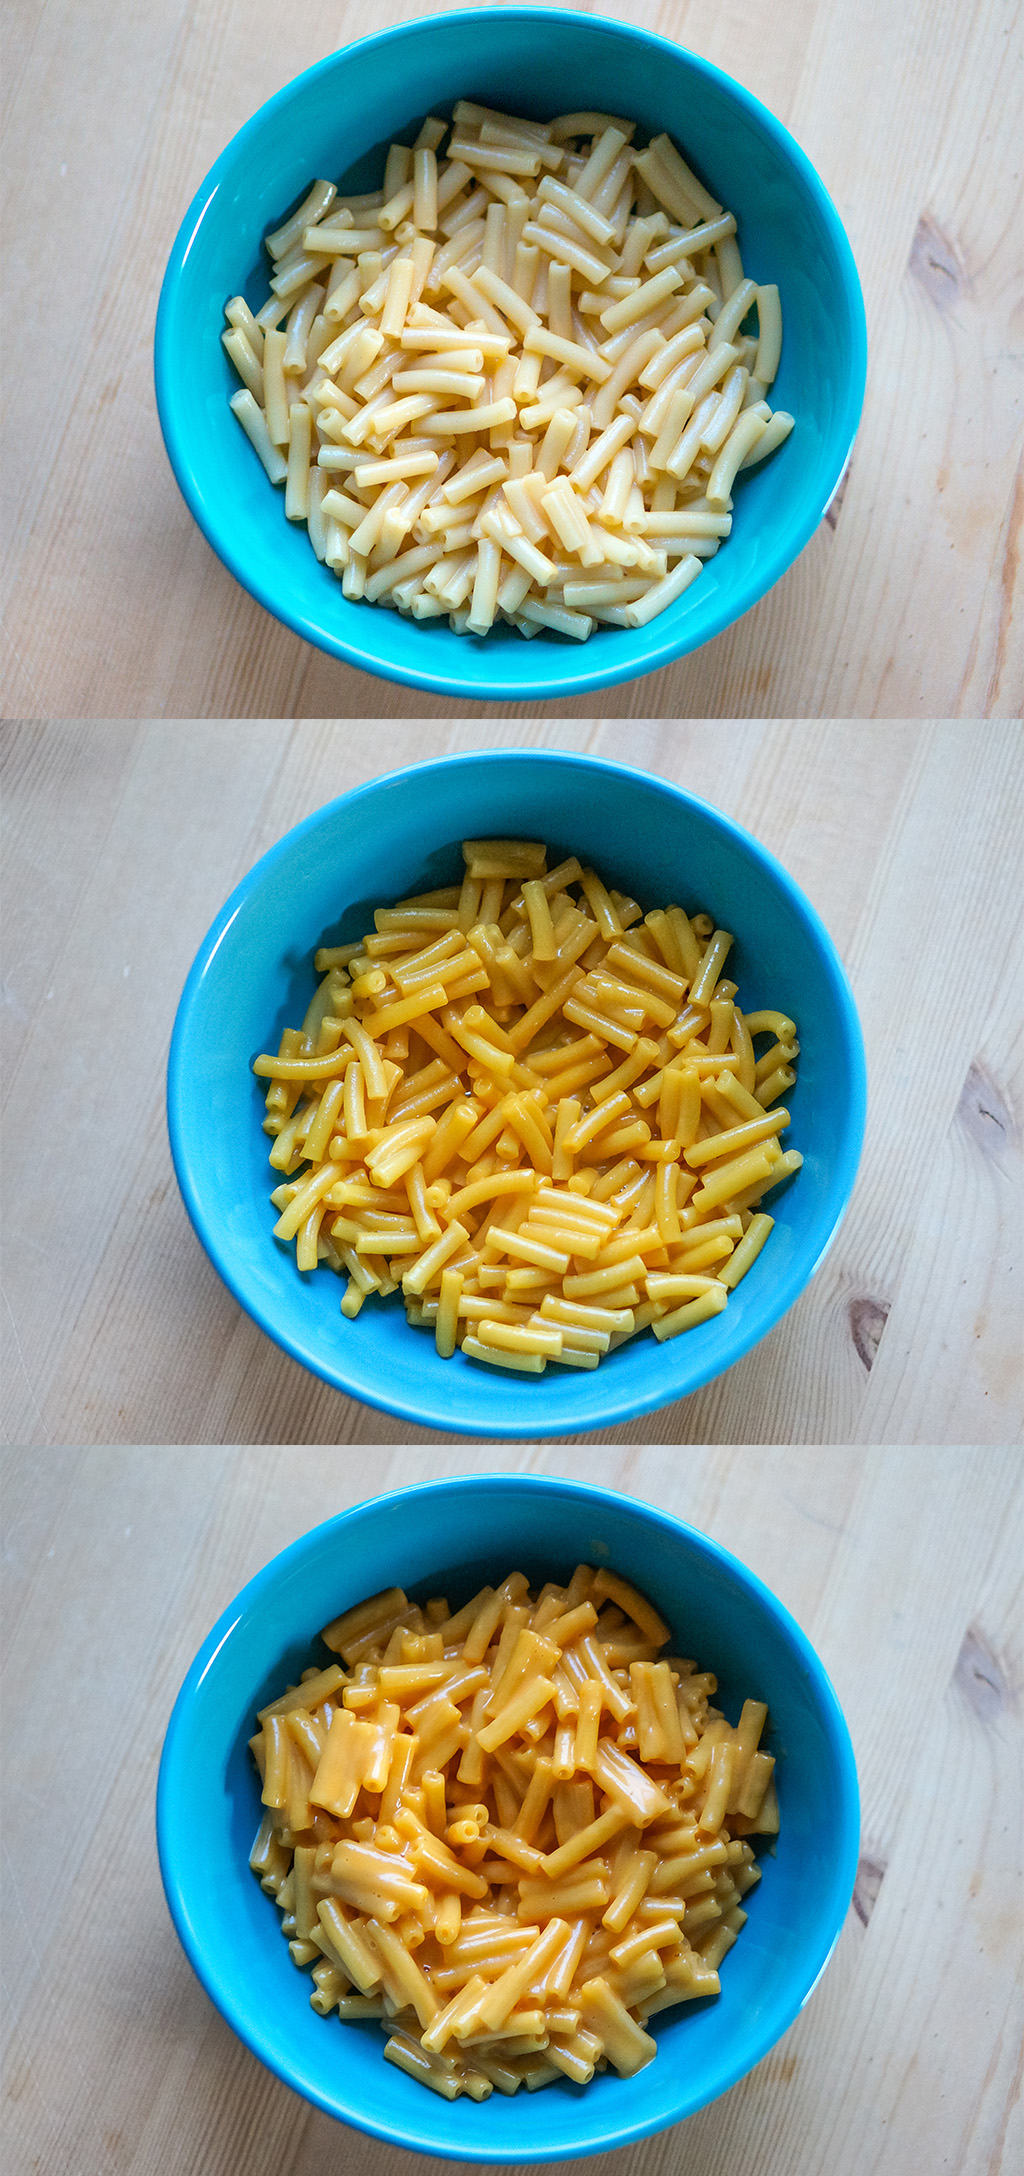 Bowls Kraft Dinner.The Food Girl in Town